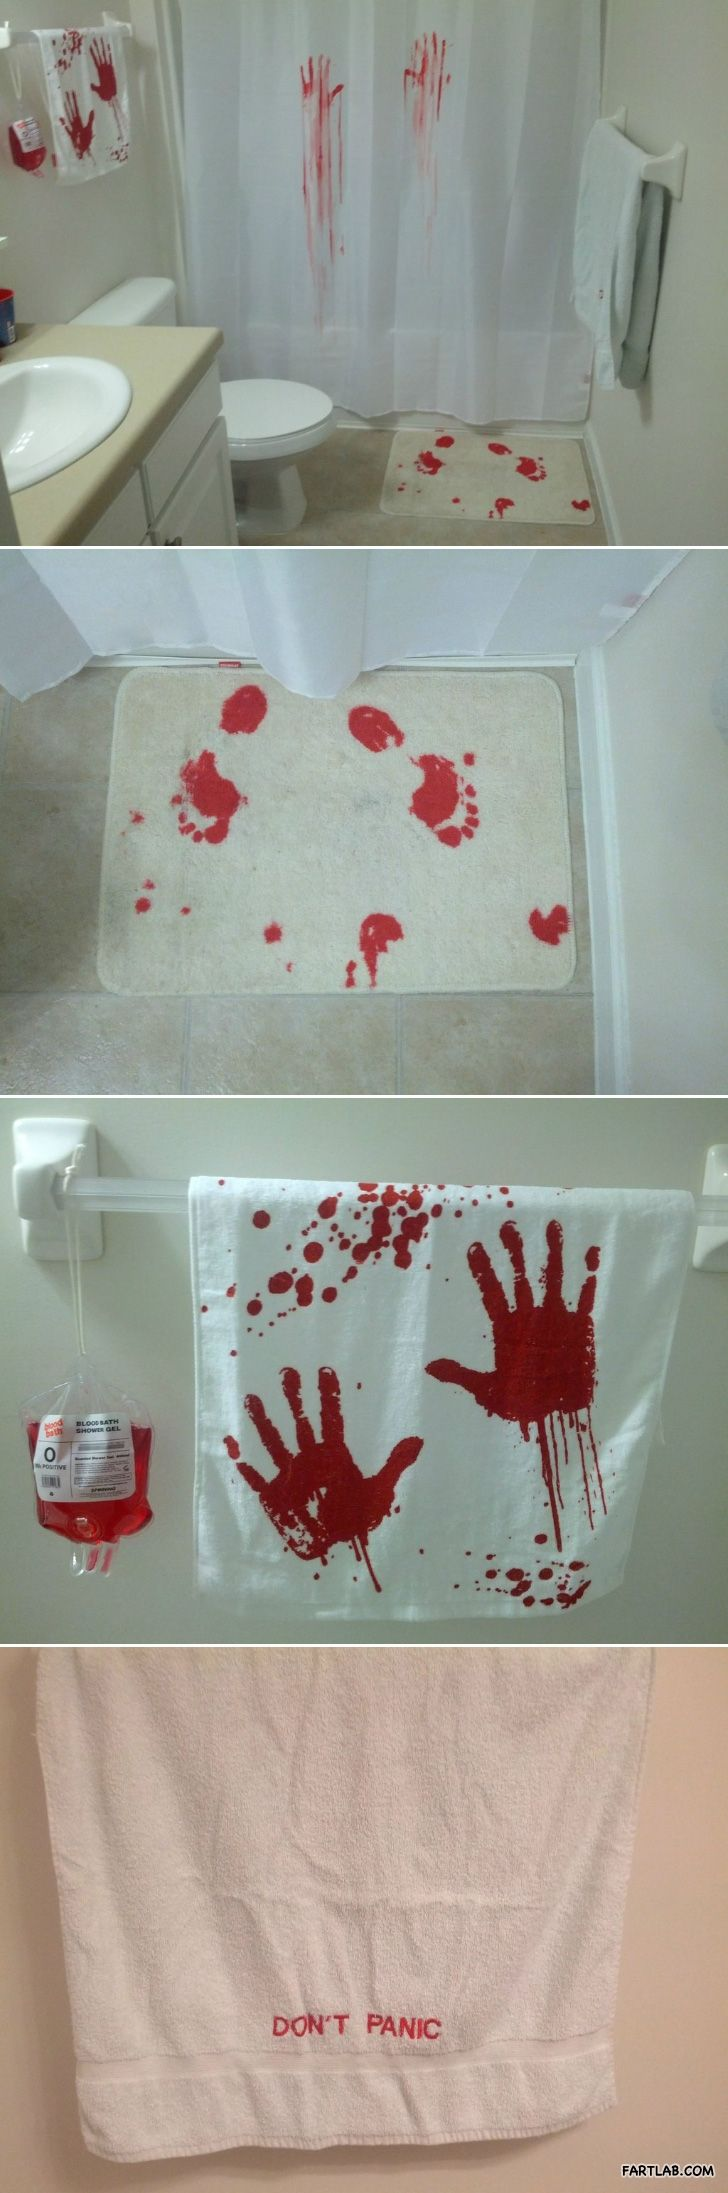 22 best images about zombie bathroom on pinterest for Zombie bathroom decor